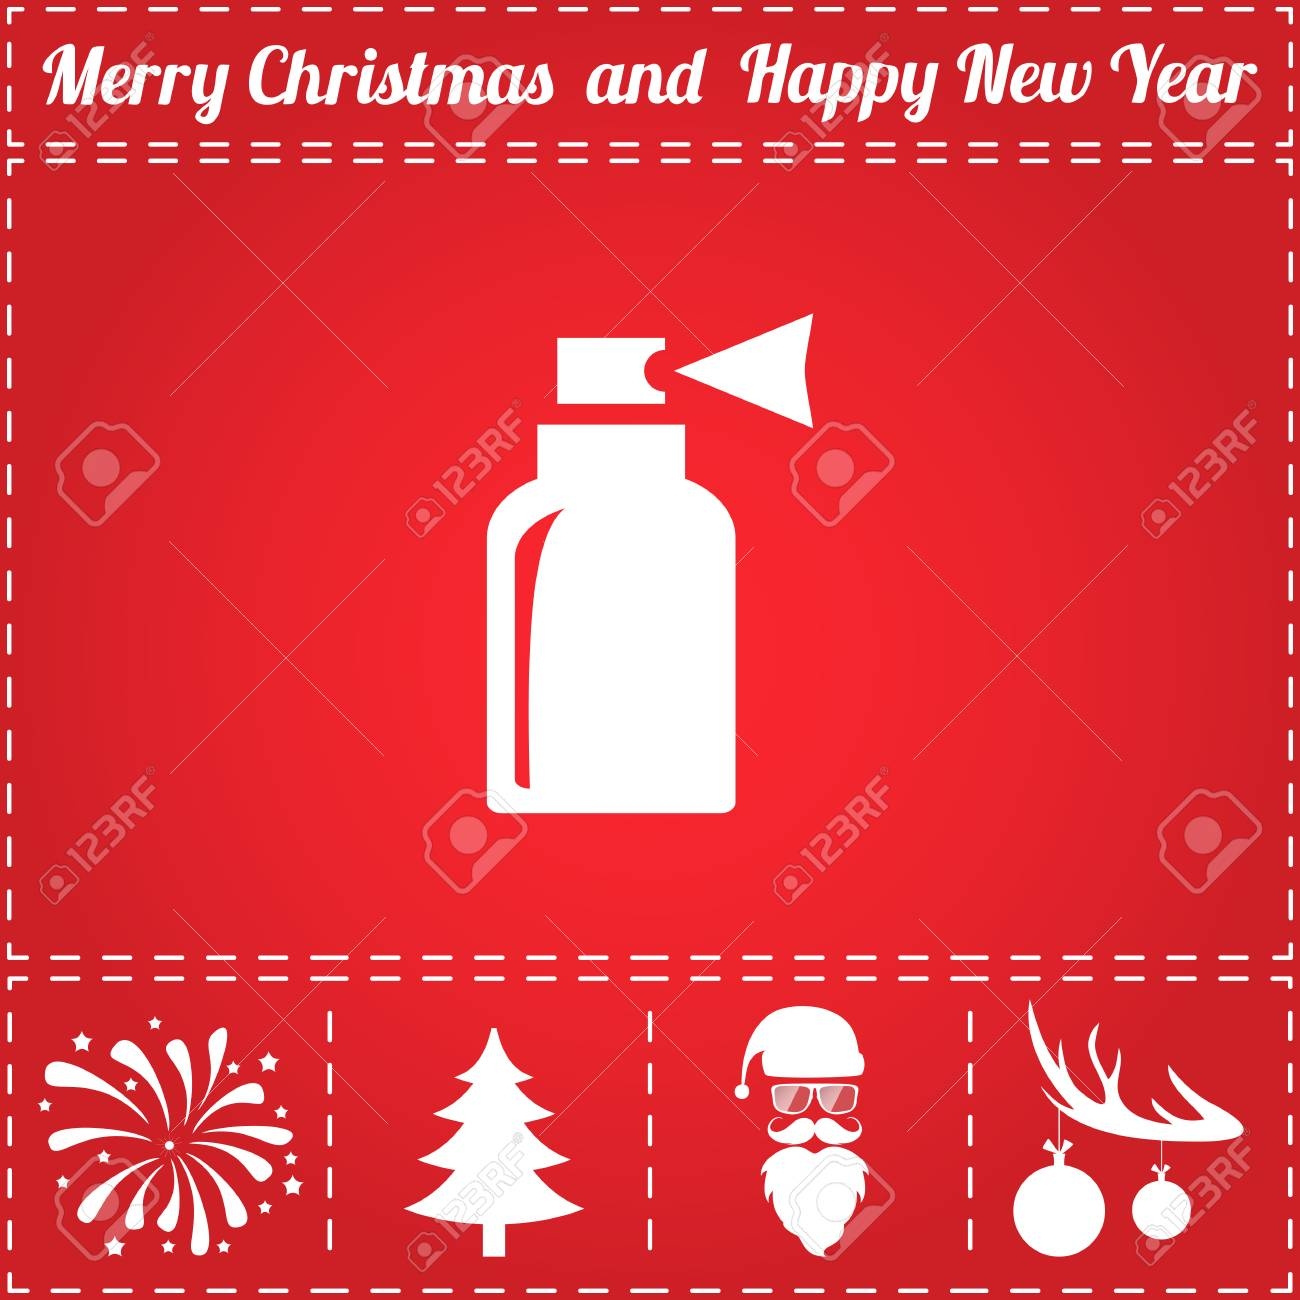 Christmas Tree Sprayer.Sprayer Icon Vector And Bonus Symbol For New Year Santa Claus